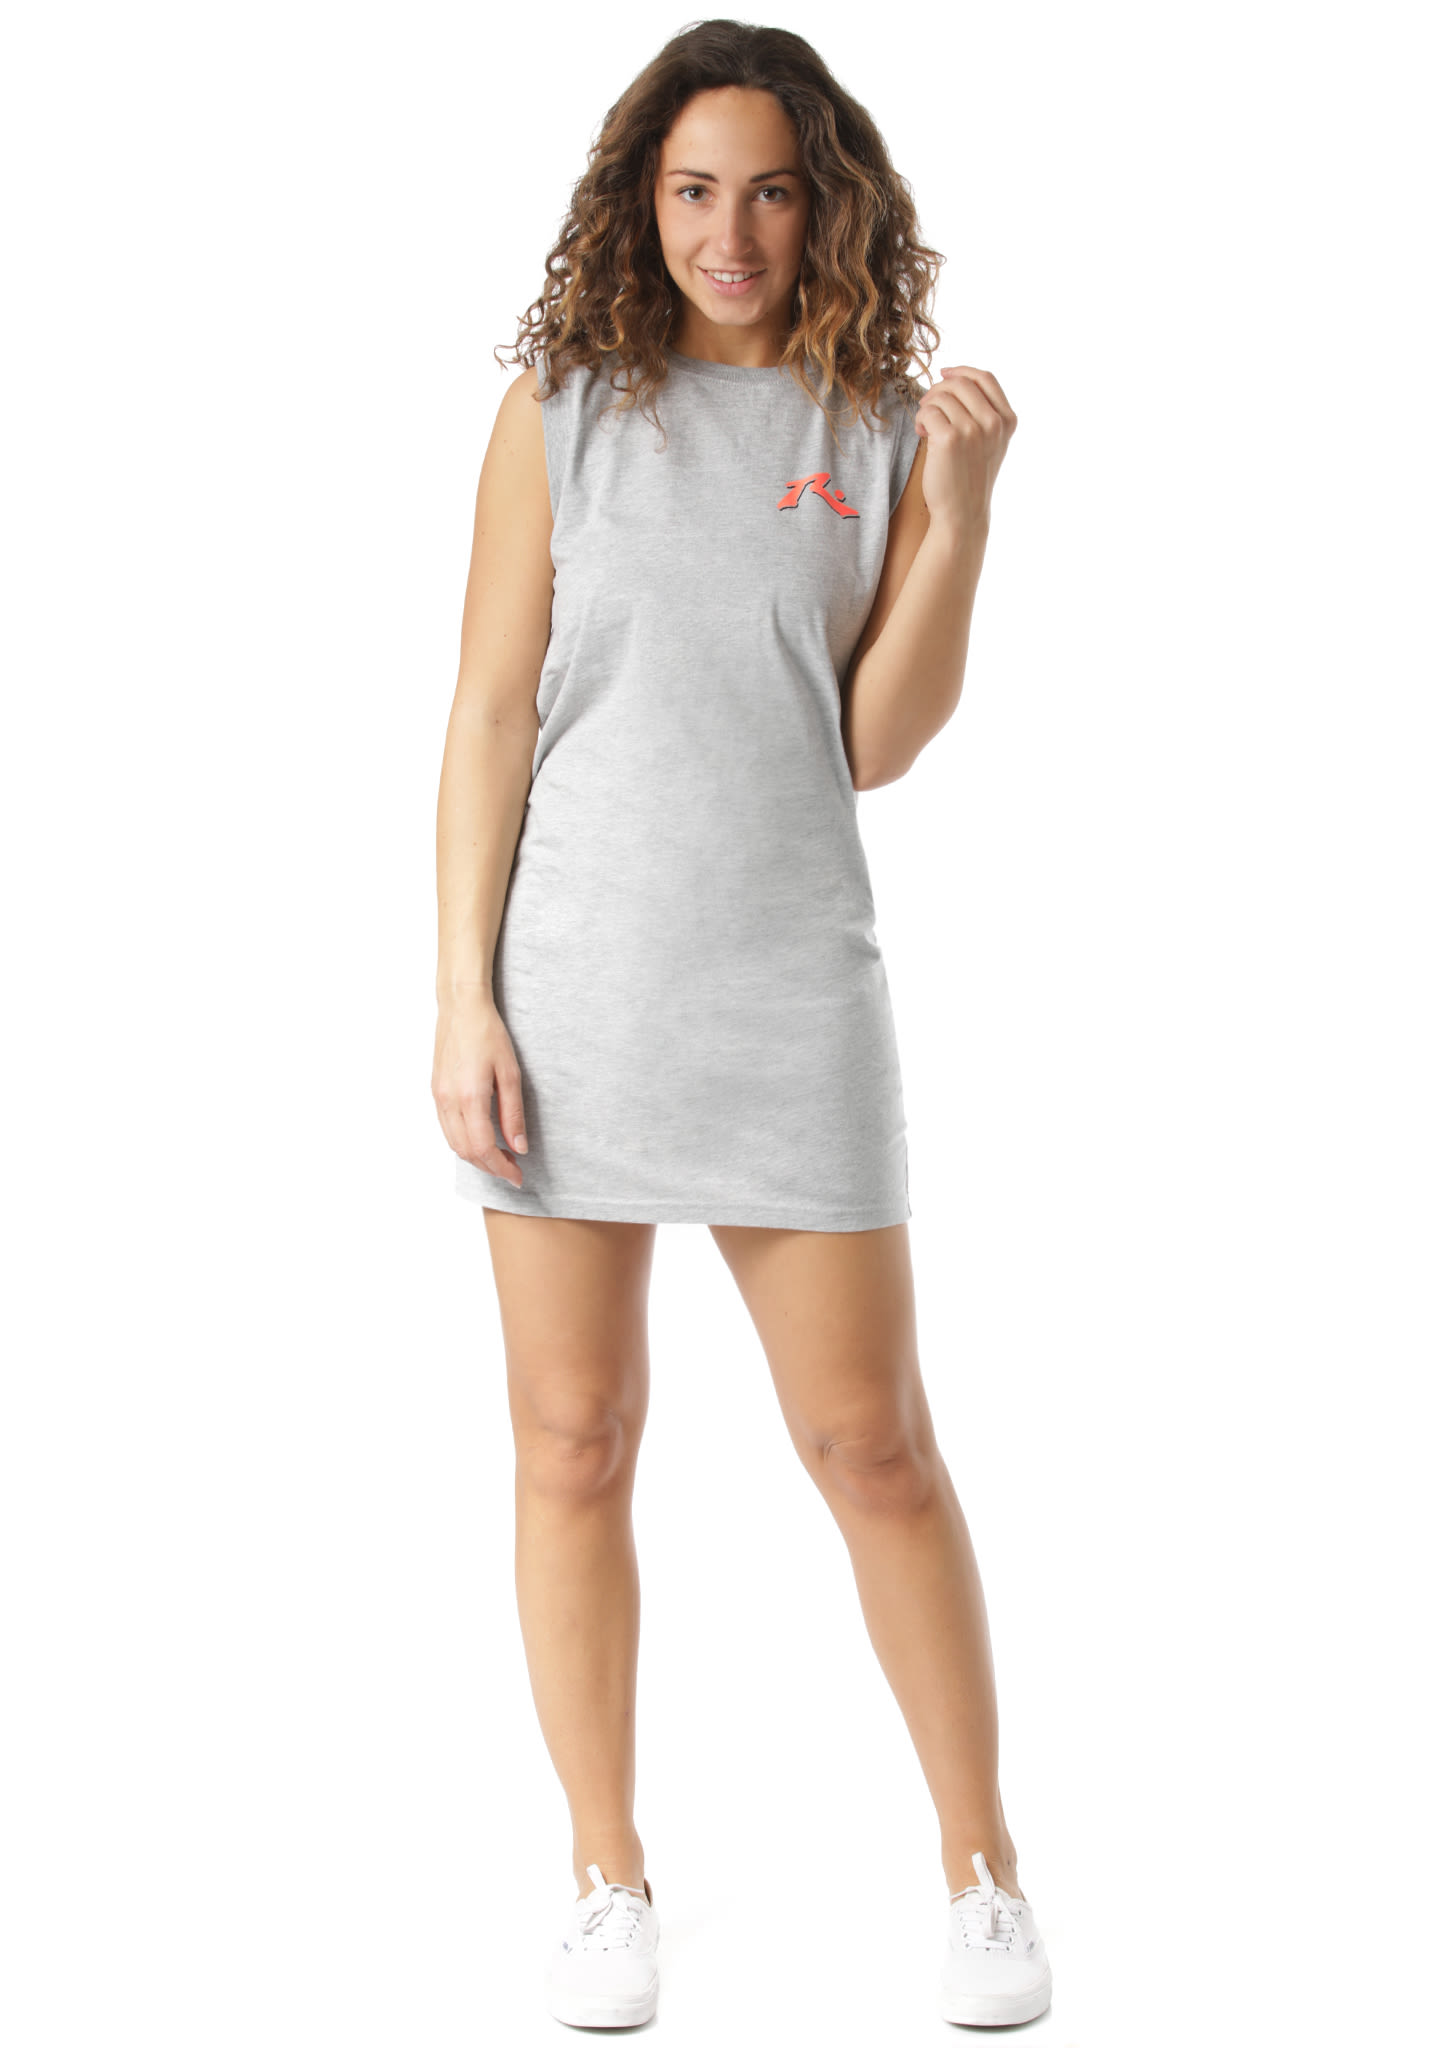 1d07d1edd94 Rusty Stained Glass Muscle - Dress for Women - Grey - Planet Sports